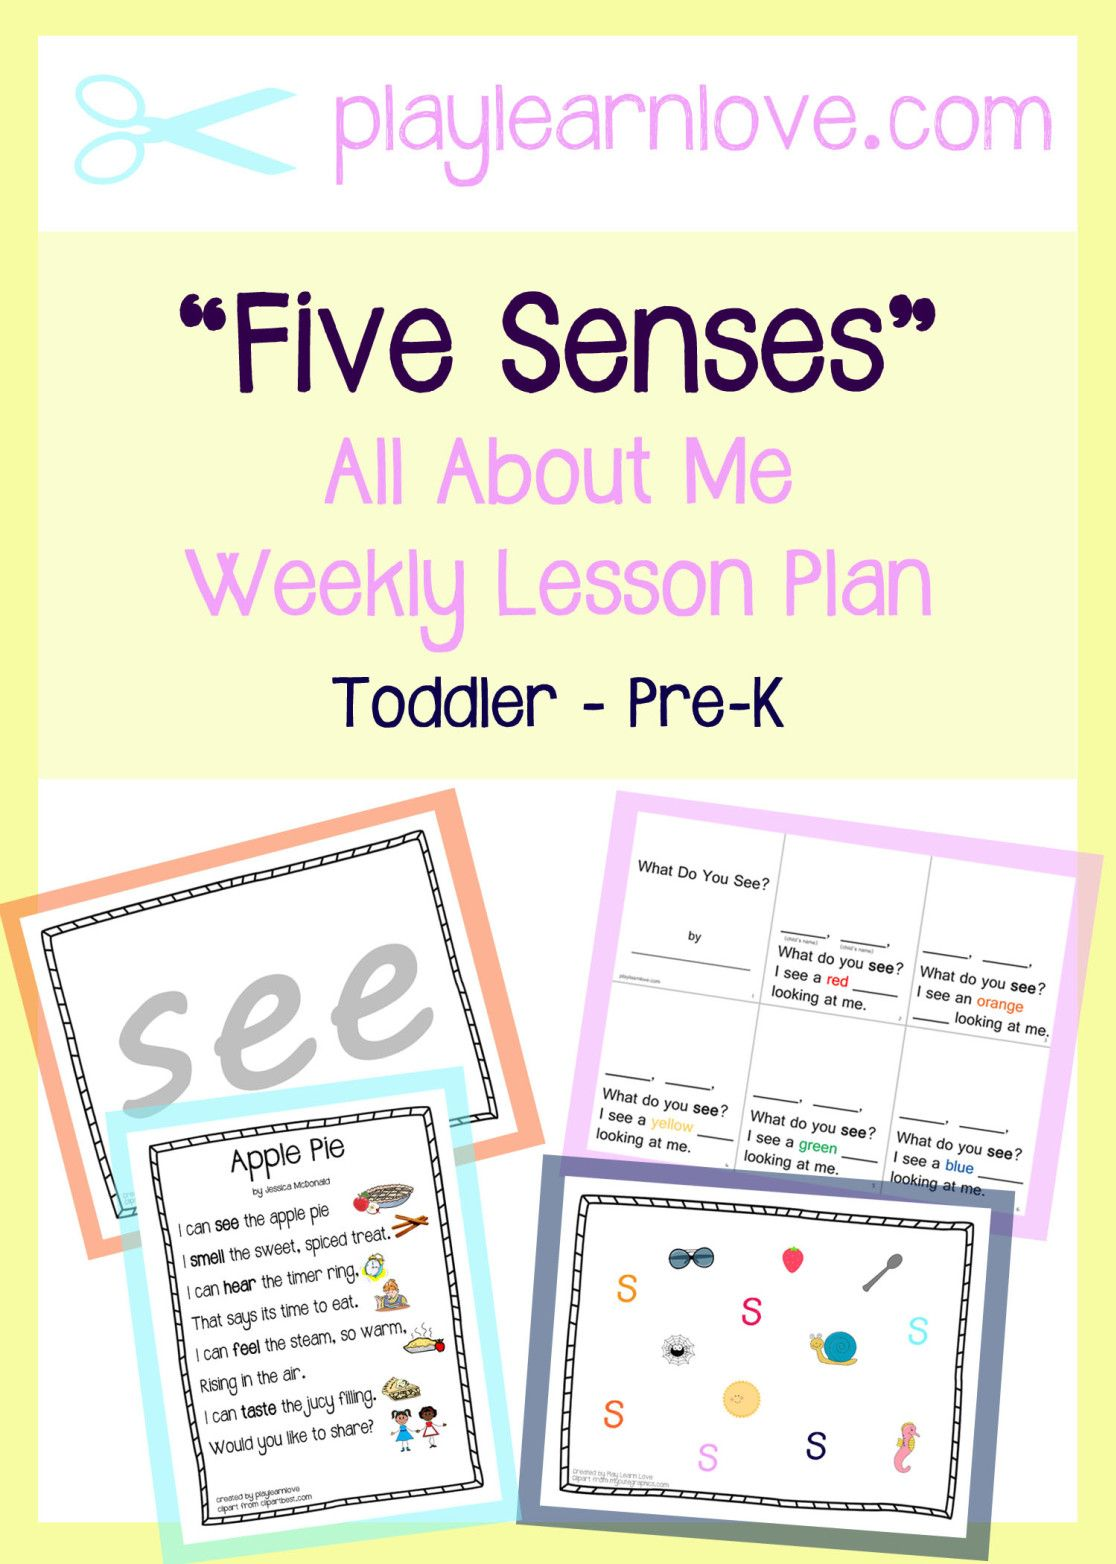 Five Senses Lesson Plan All About Me Themed Crafts And Activities For Preschoolers And Toddlers